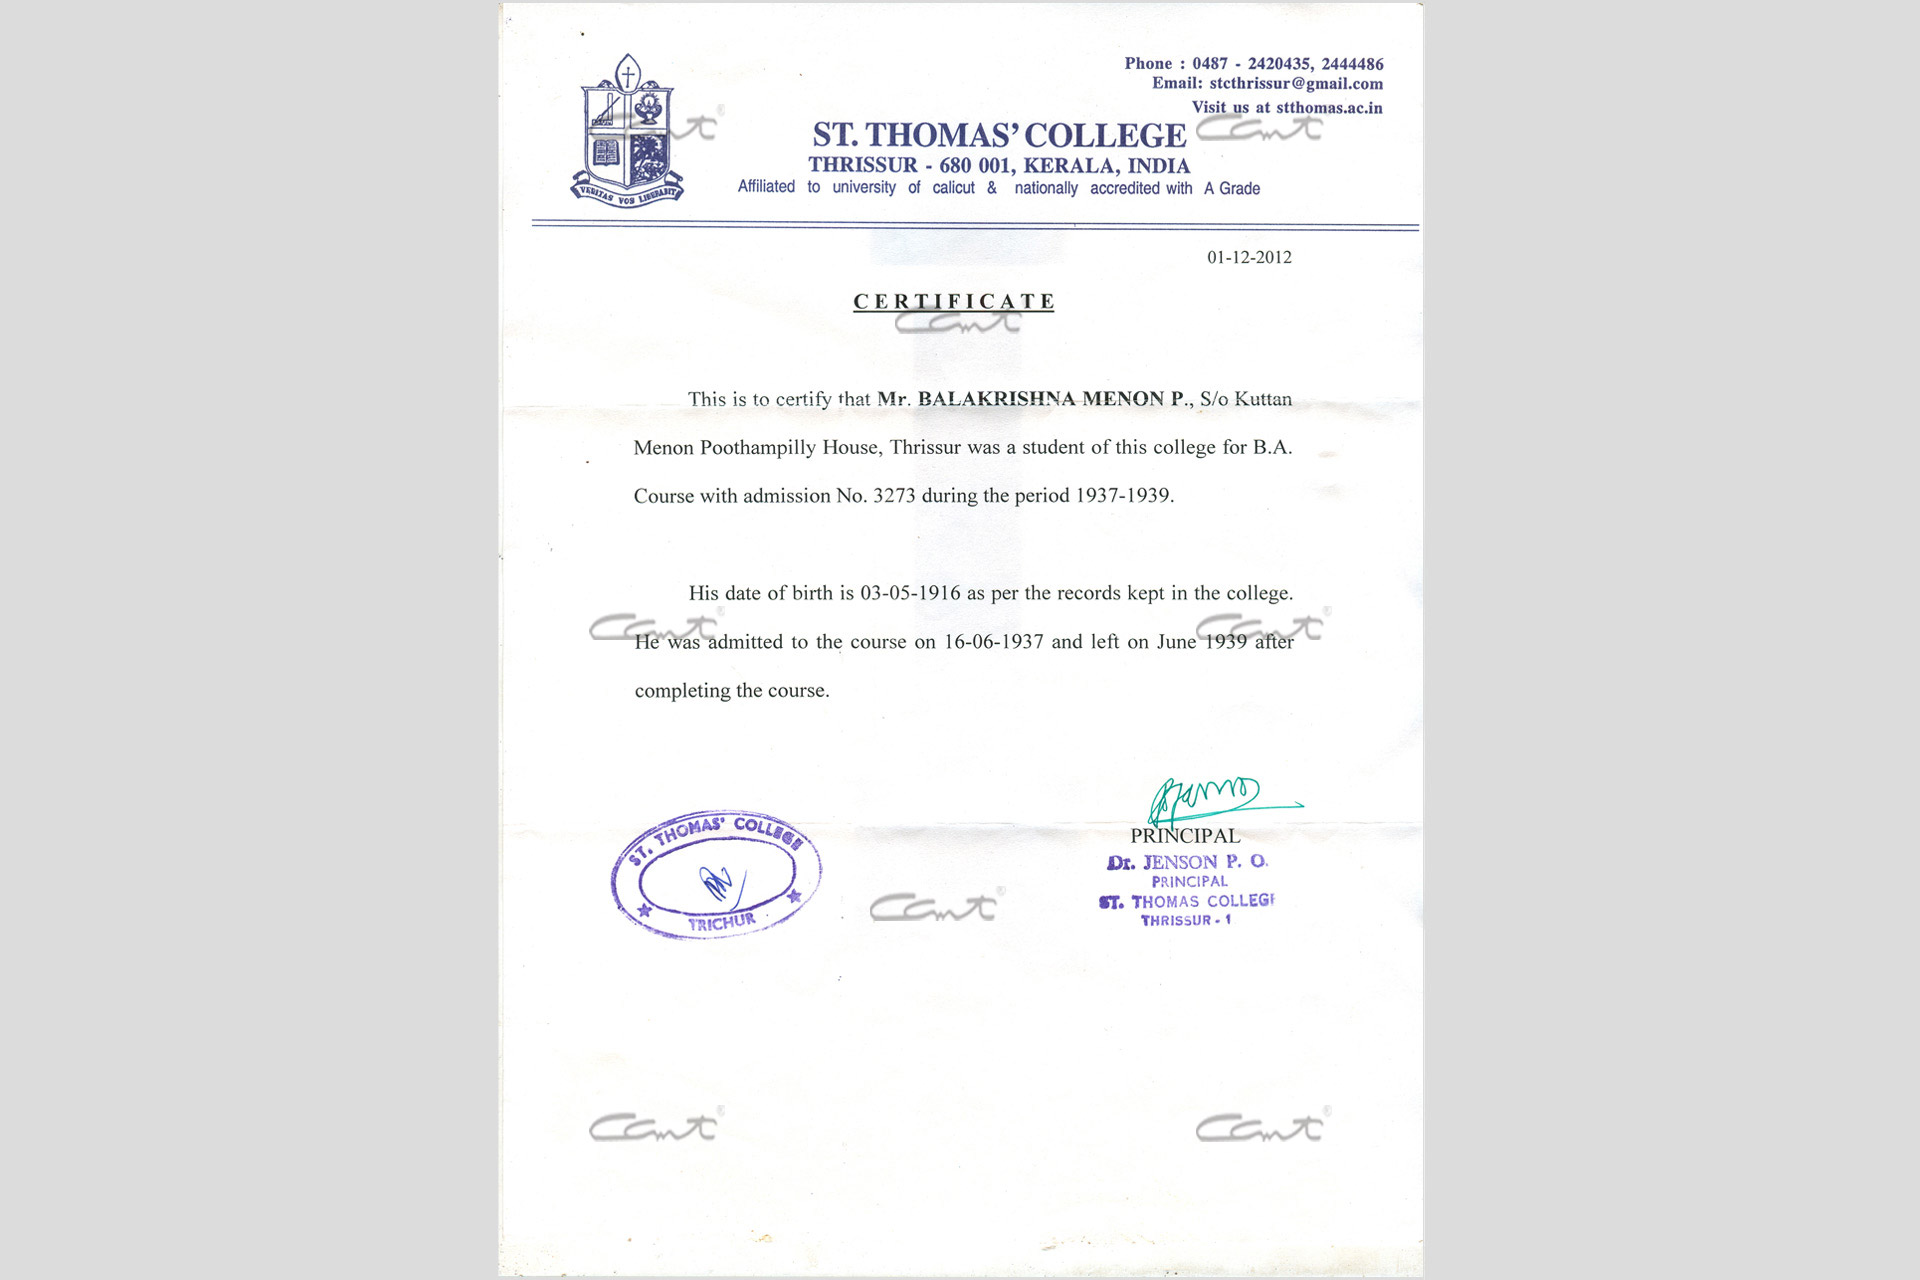 This is the certificate from St. Thomas College stating that Balakrishna Menon did his B.A there from 1937 to 1939.